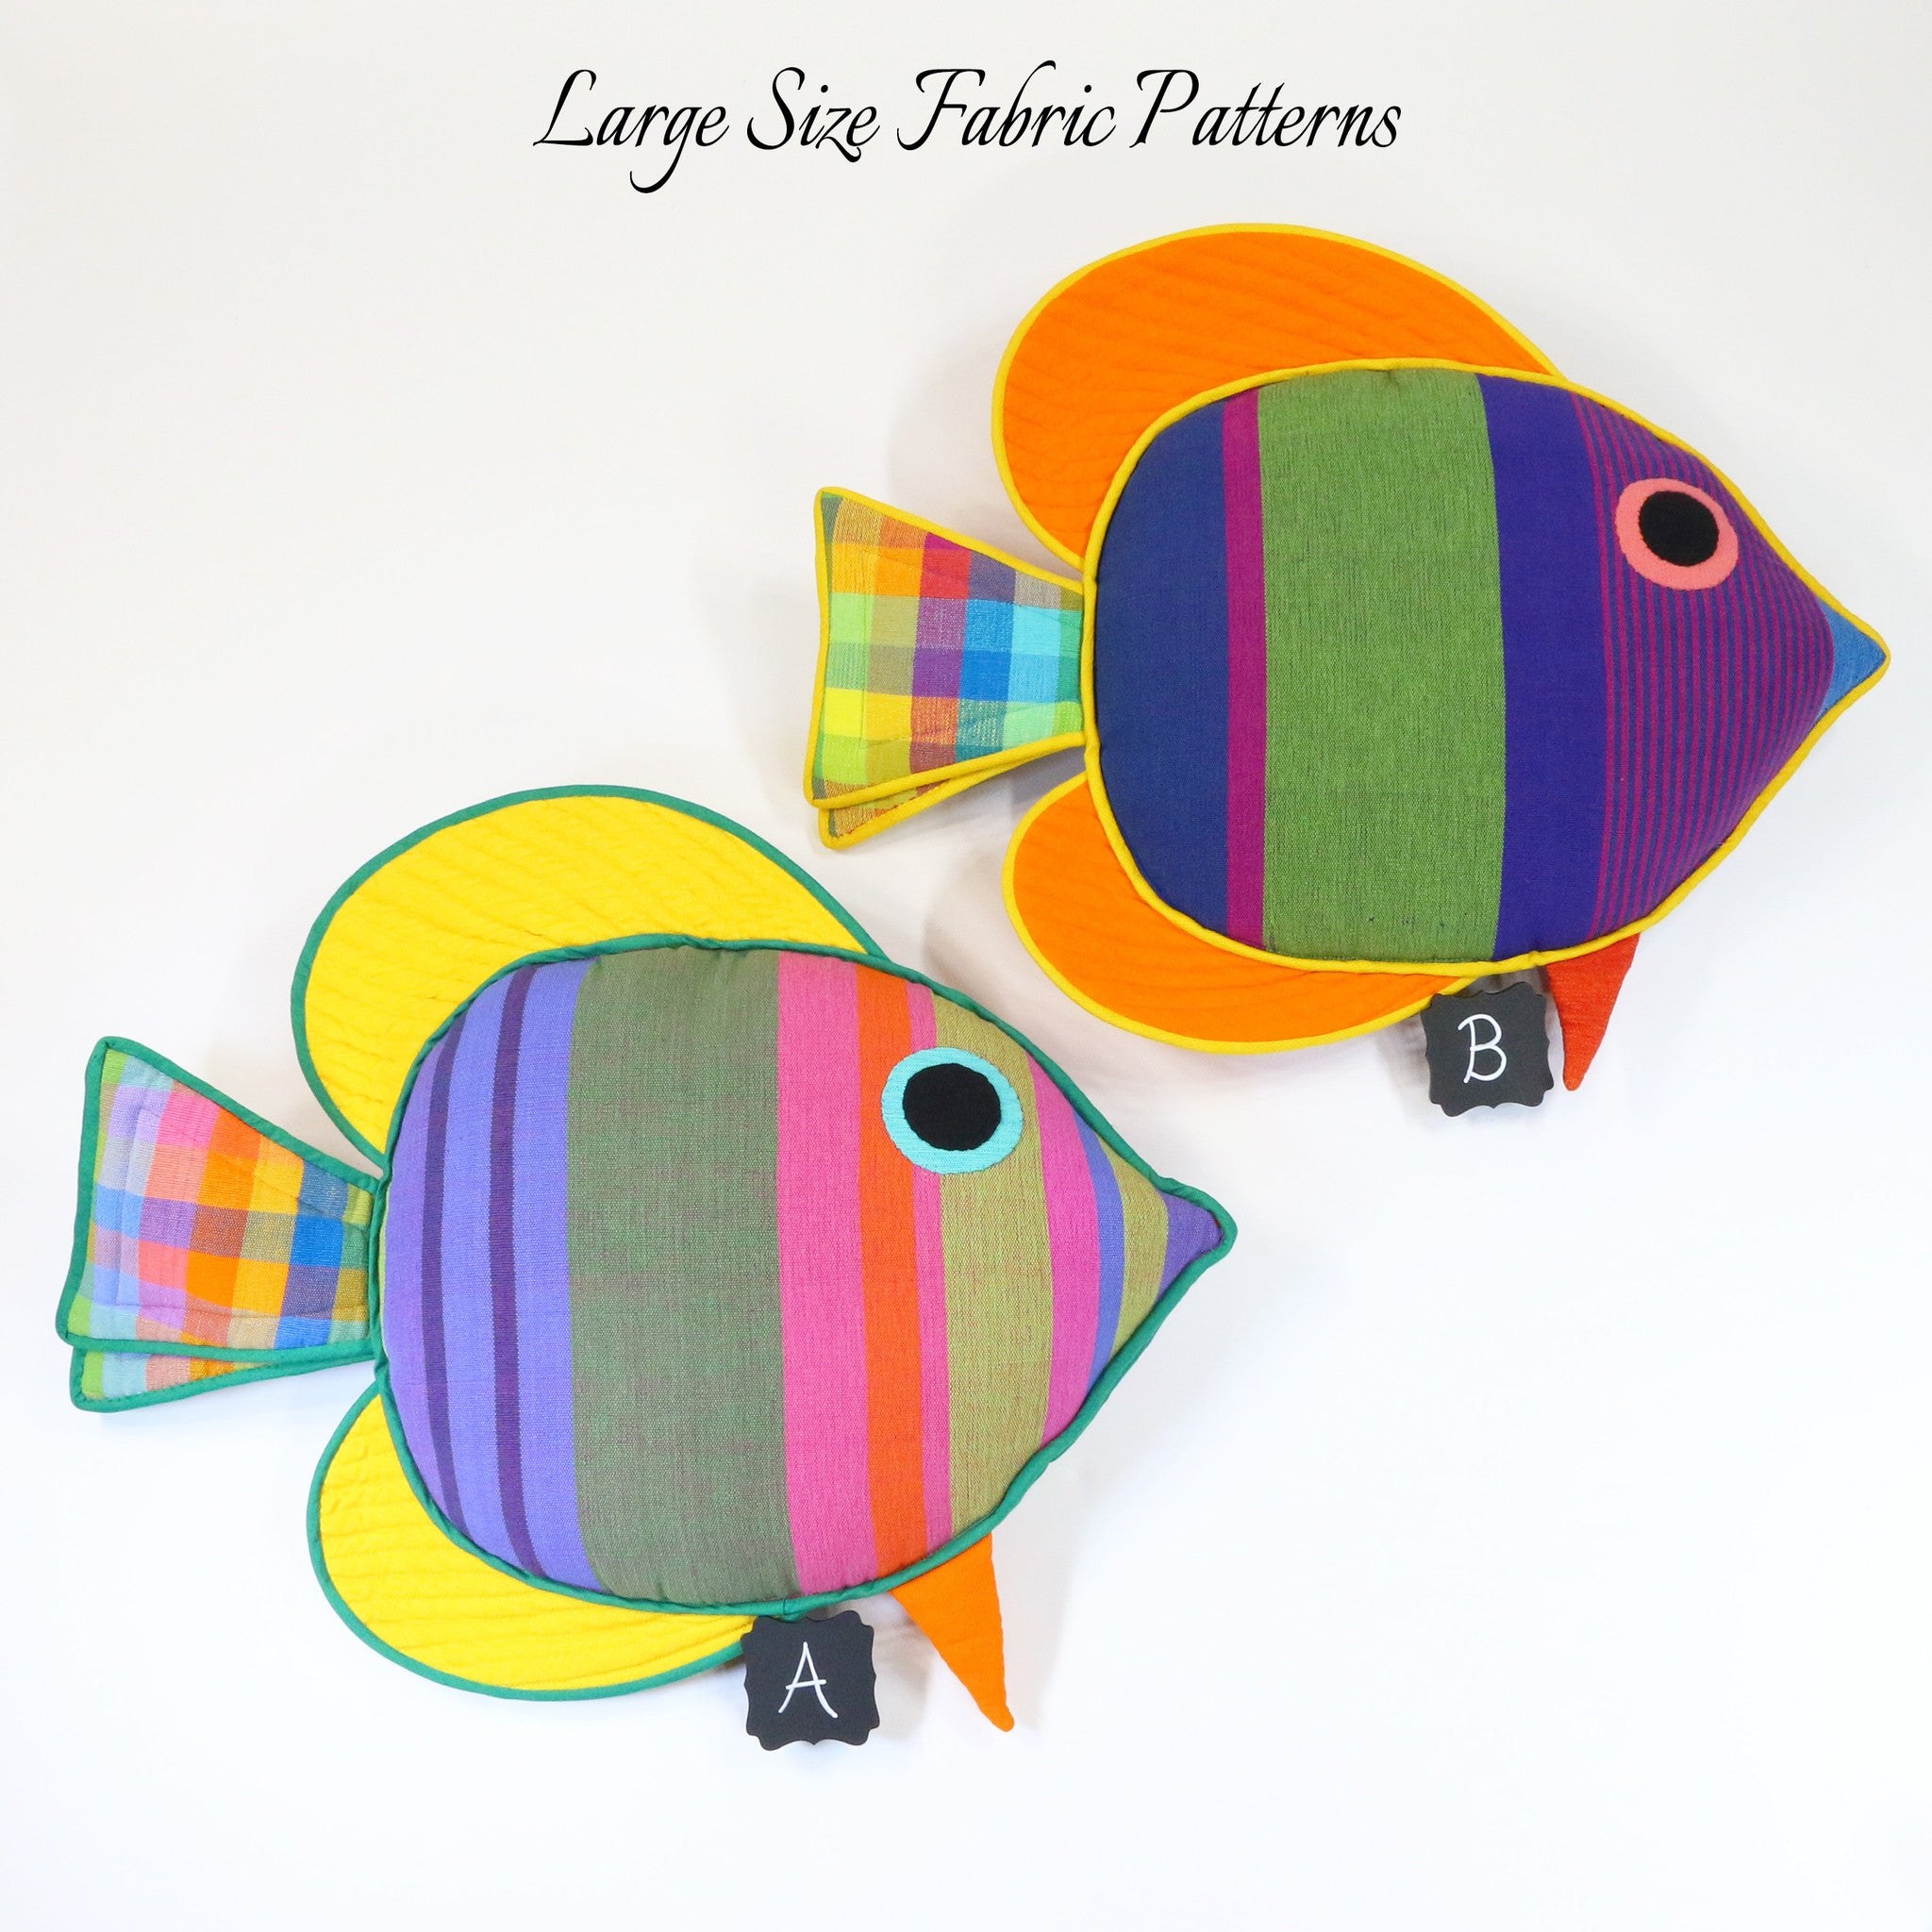 Cooper, the Sail Fin Fish – all large size fabric patterns shown